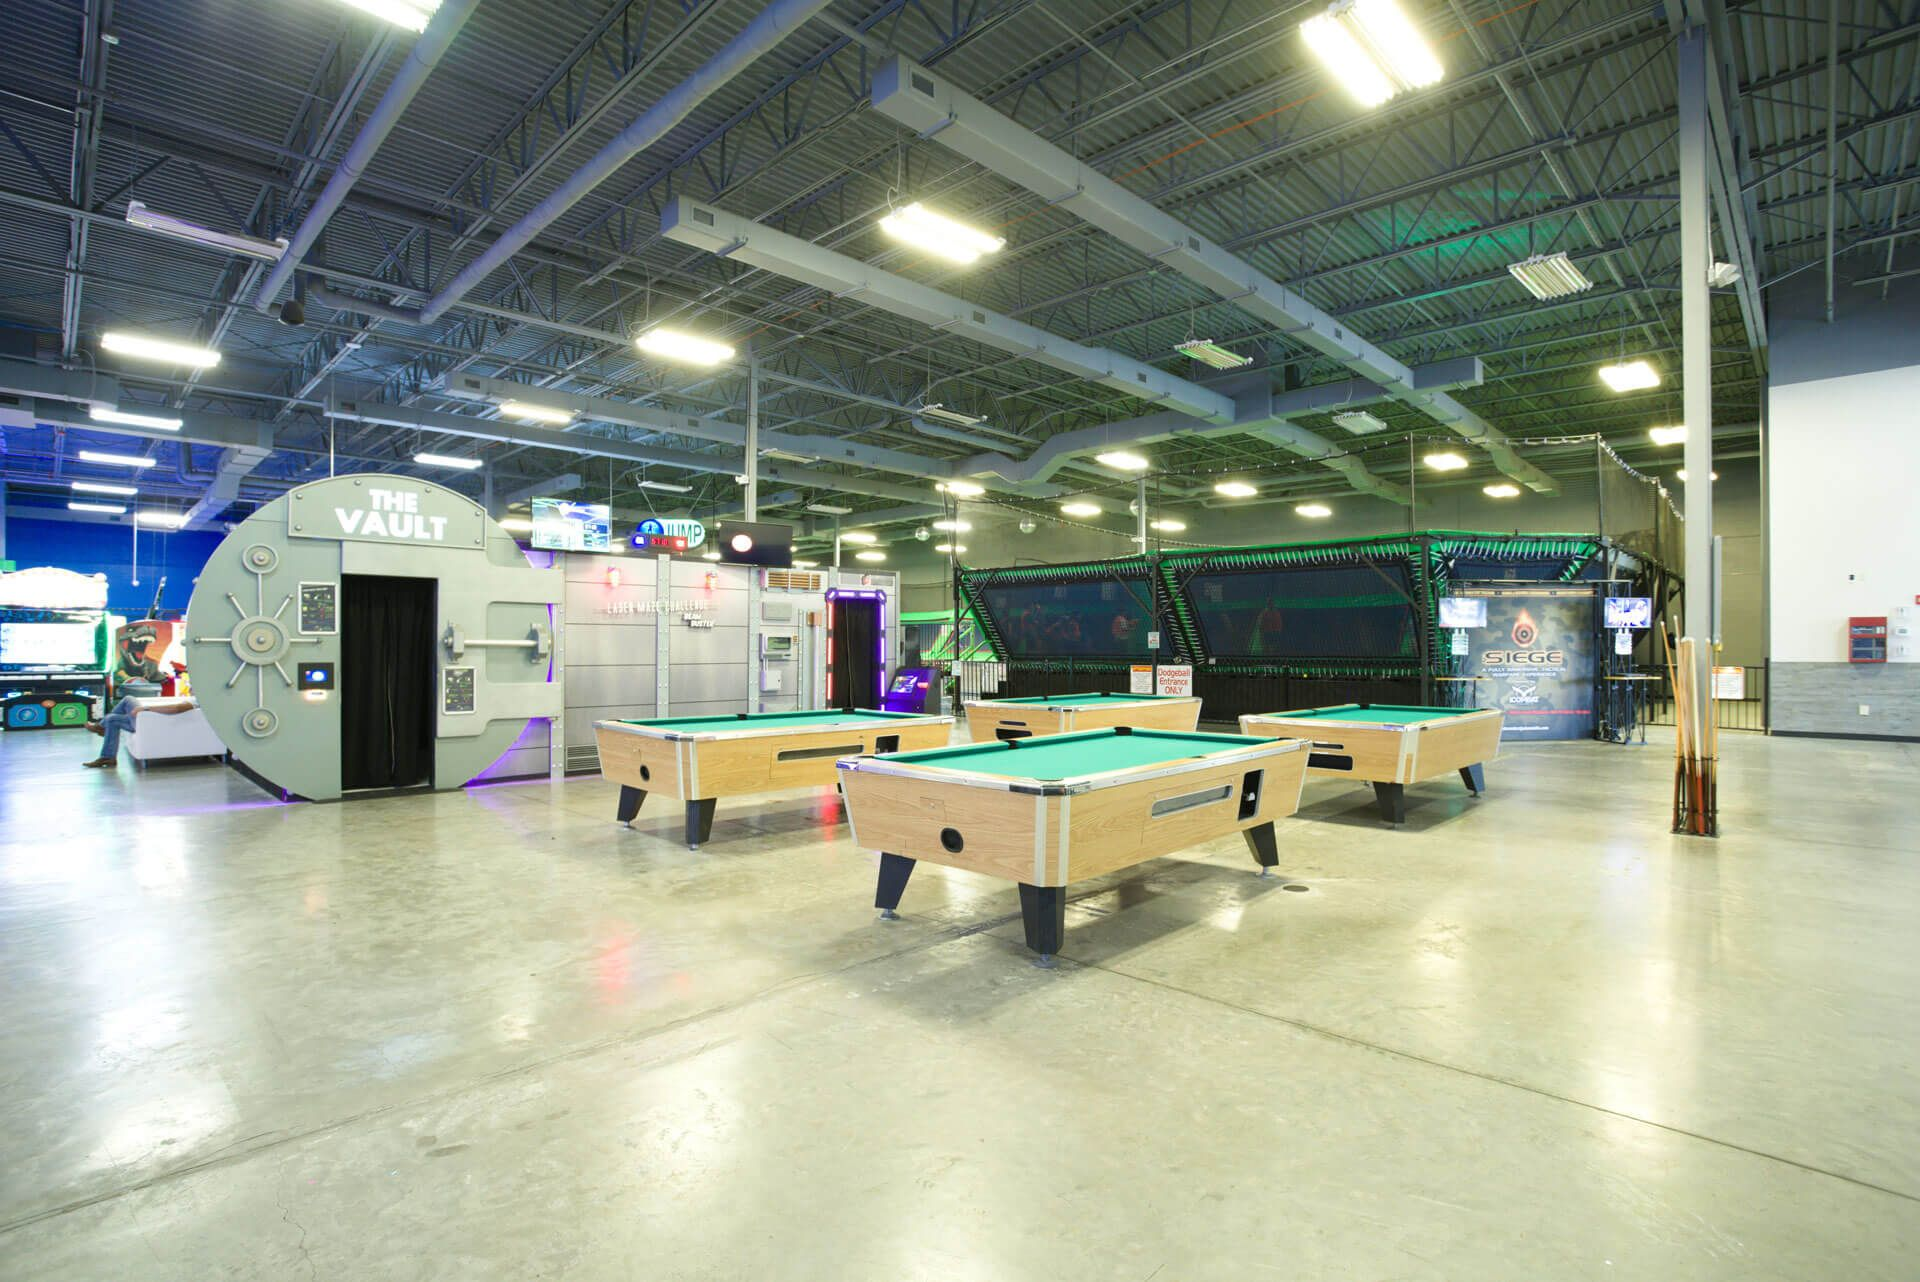 Indoor Activities Jacksonville Fl Trampoline Park Bravoz Entertainment Center Indoor Activities Trampoline Park Jacksonville Fl